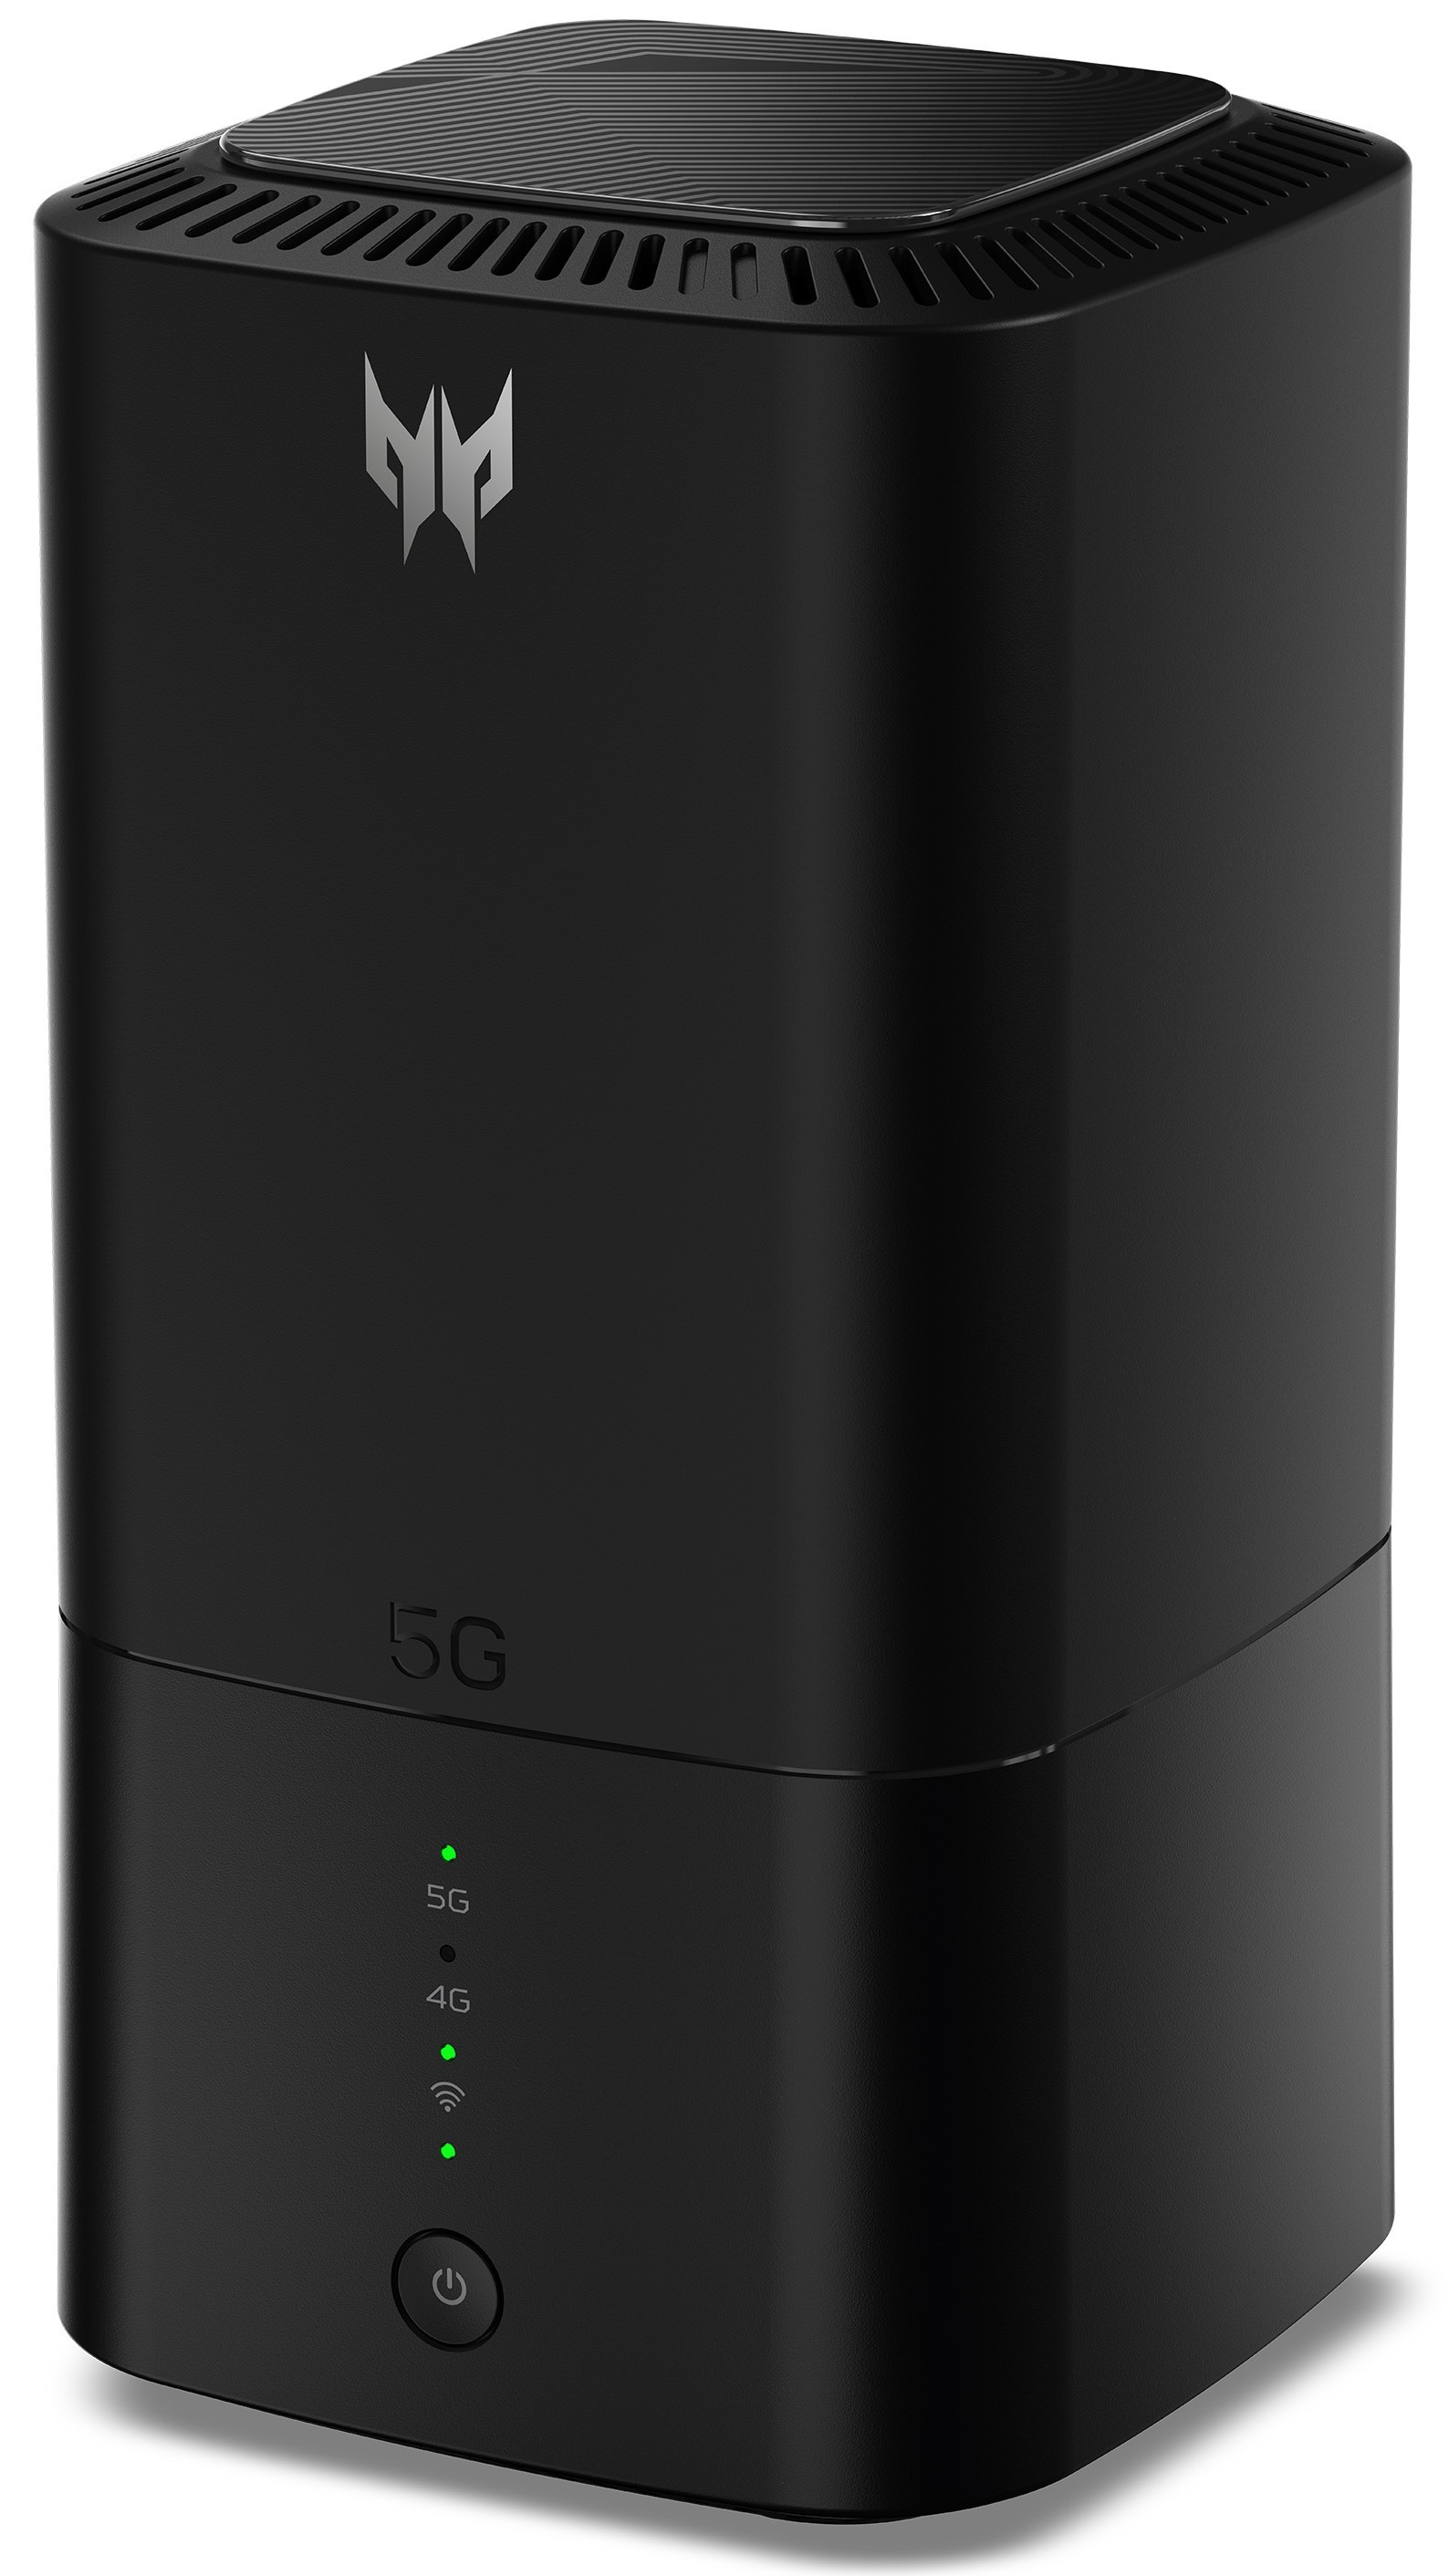 The Acer Predator Connect X5 5G CPE Router